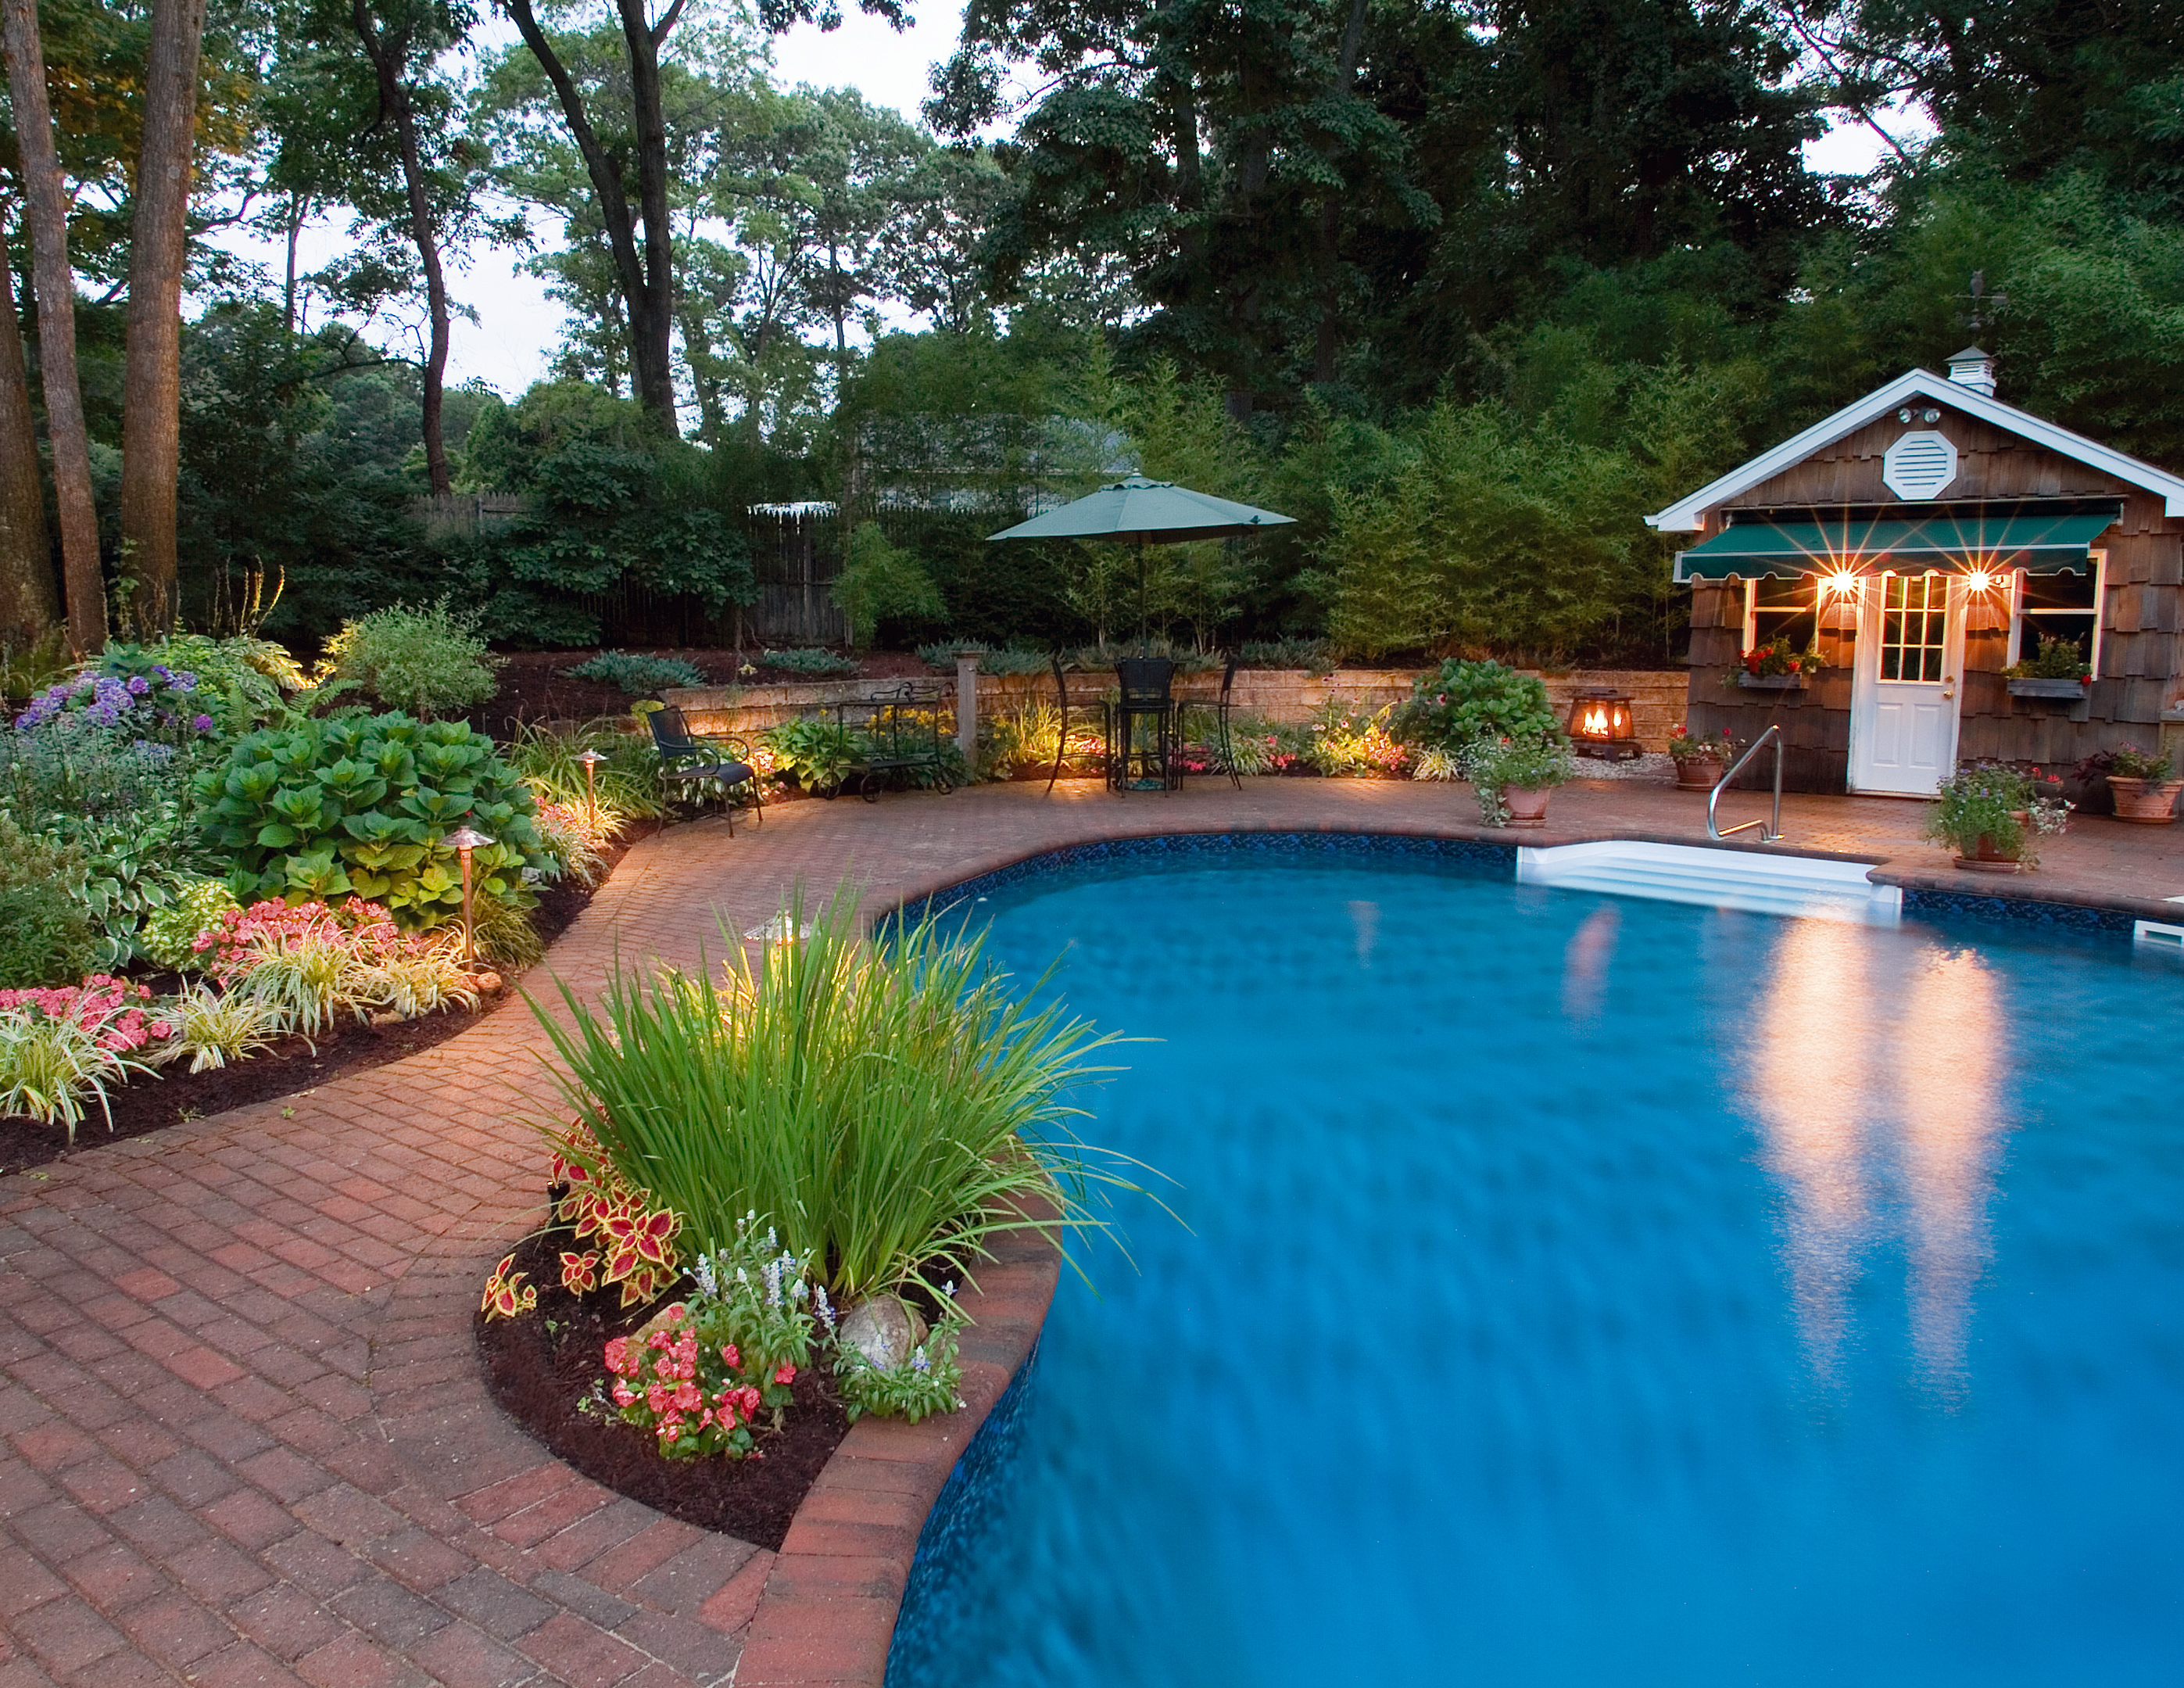 pool area lighting can make your summer evenings even more magical